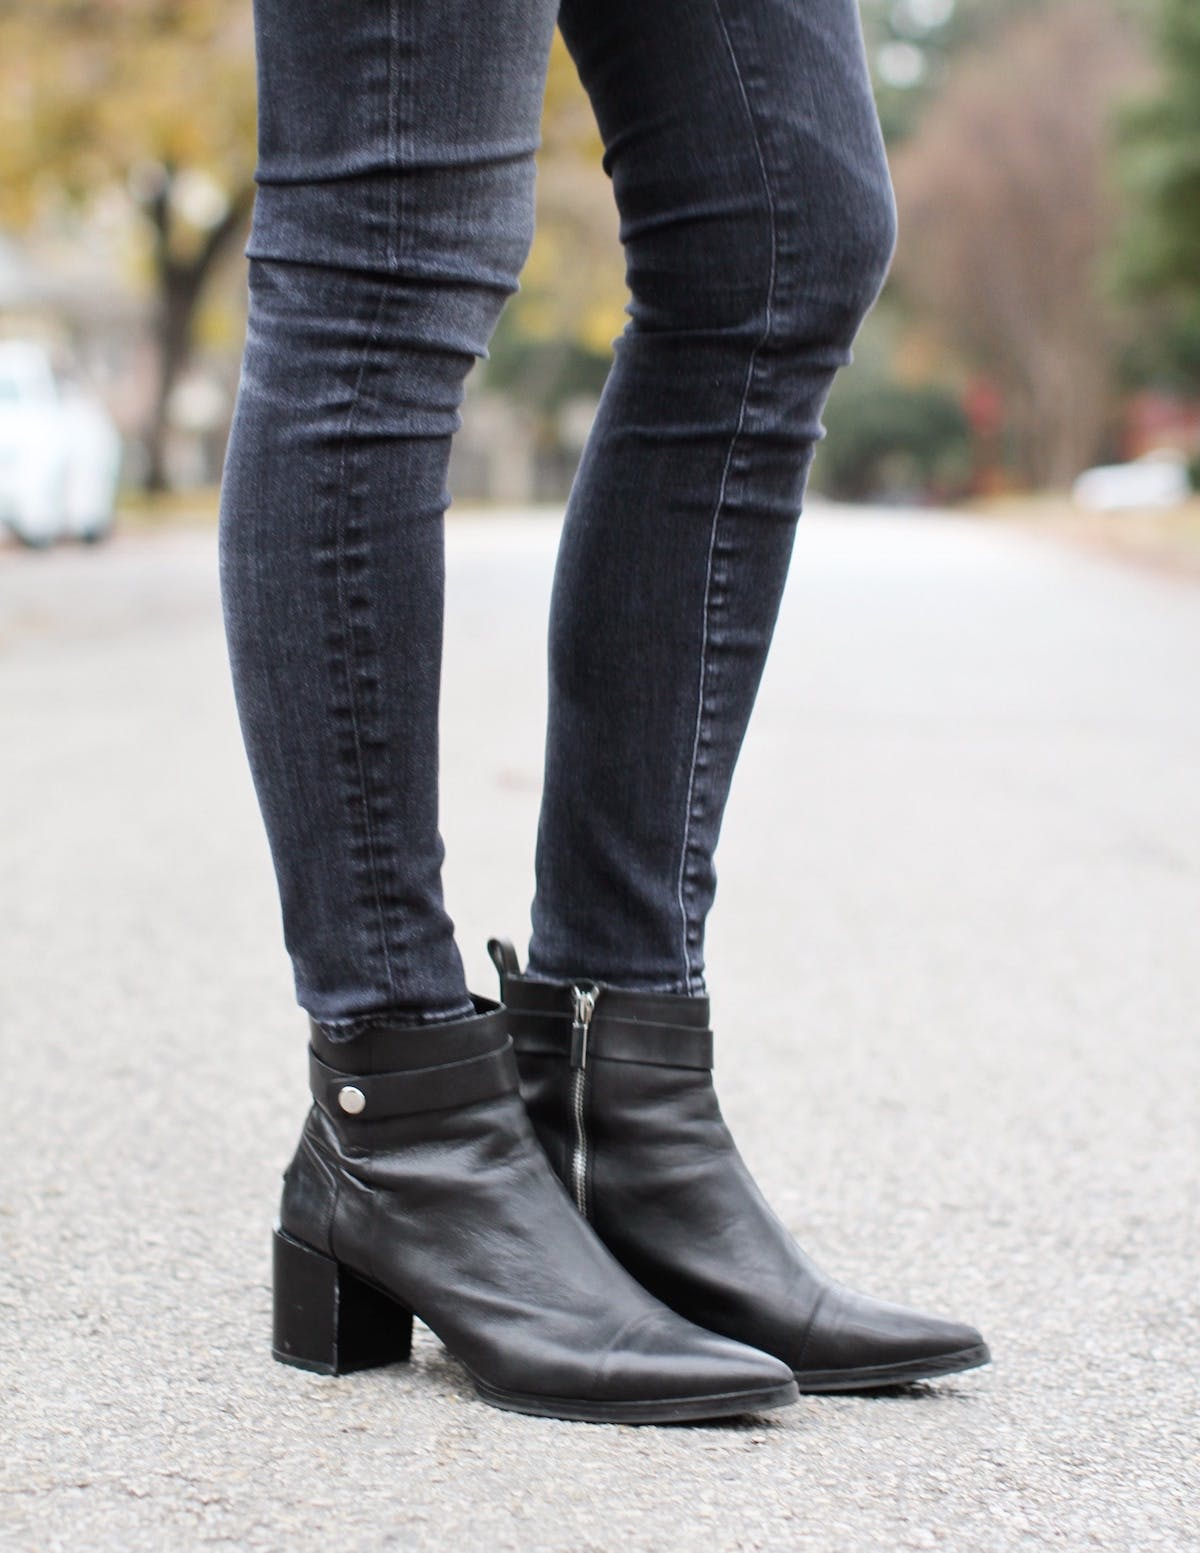 ankle boots dallas wardrobe staples